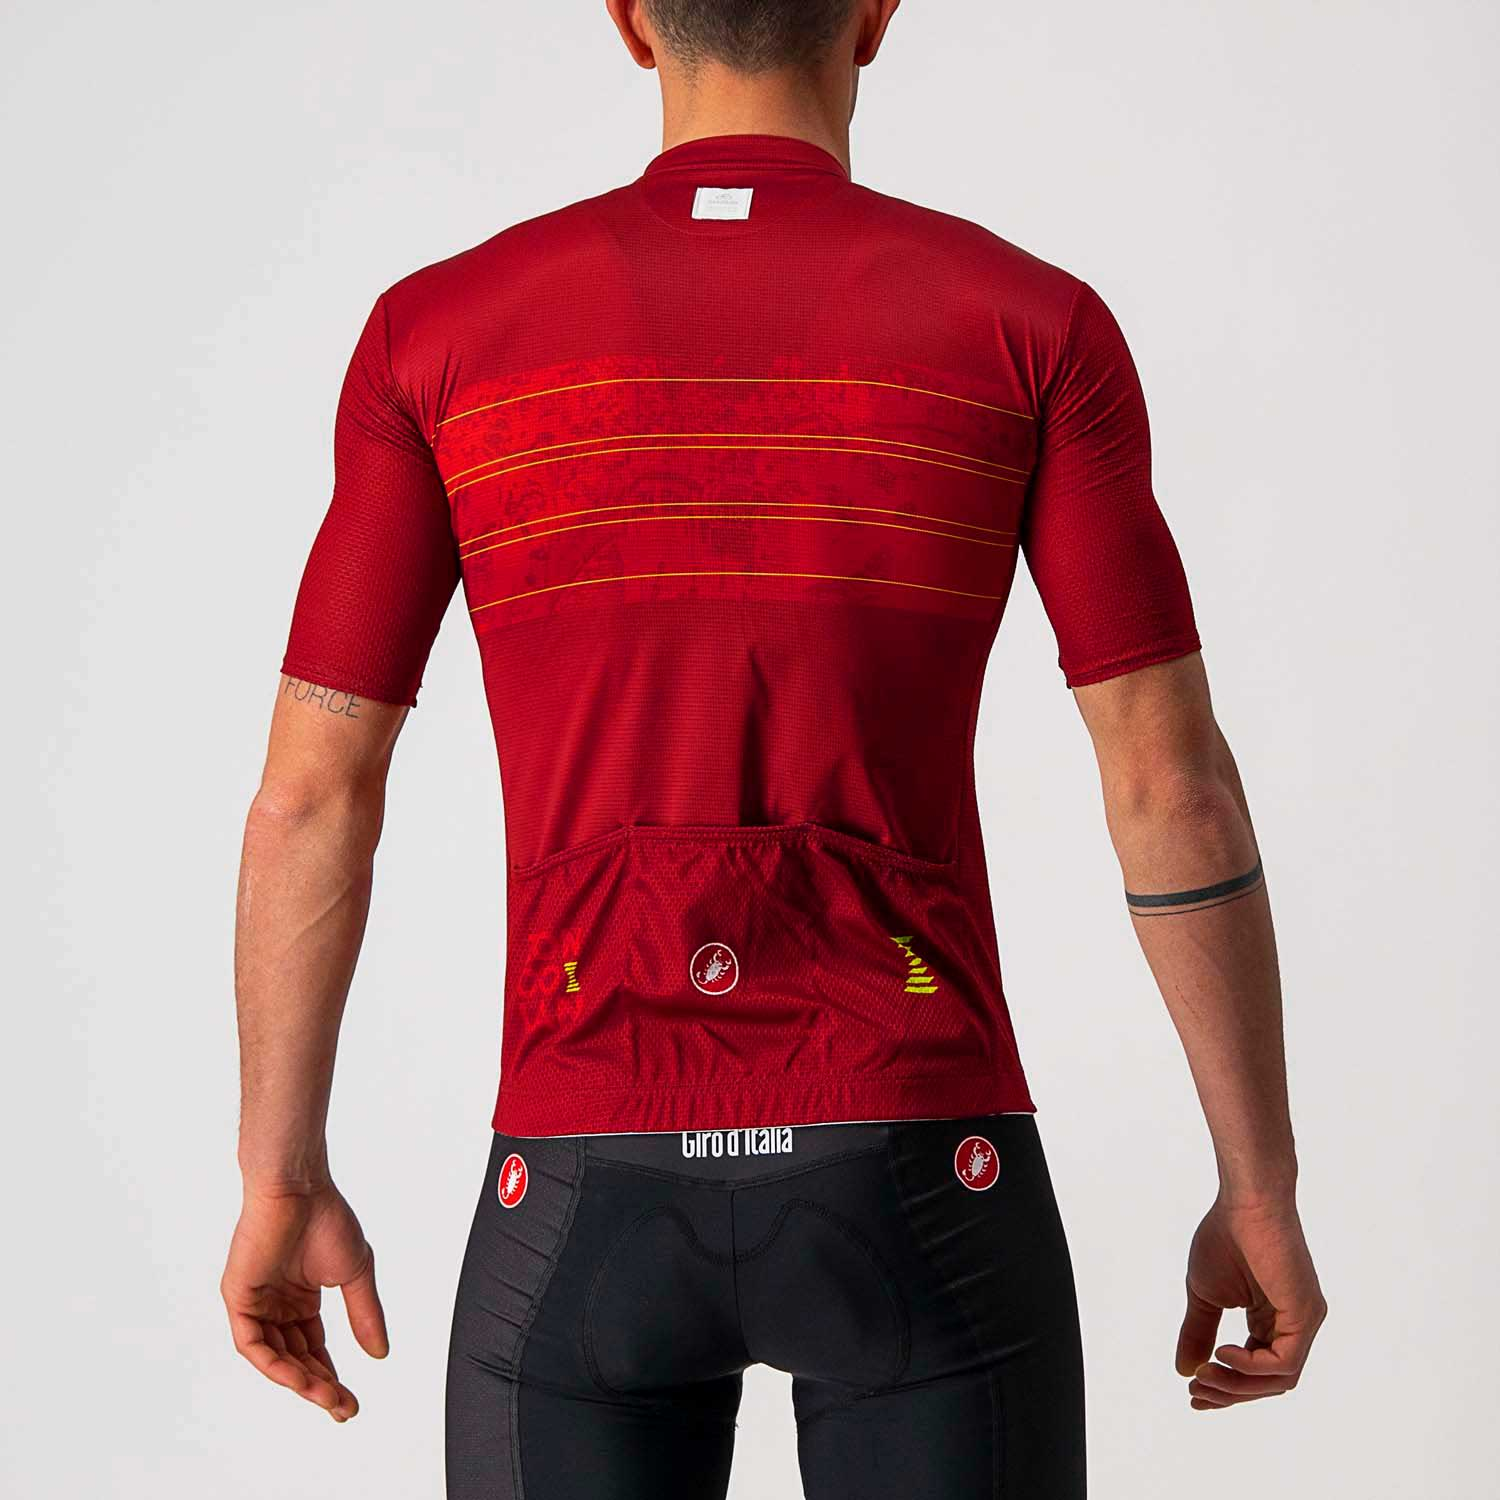 Castelli-Castelli Zoncolan Jersey--saddleback-elite-performance-cycling